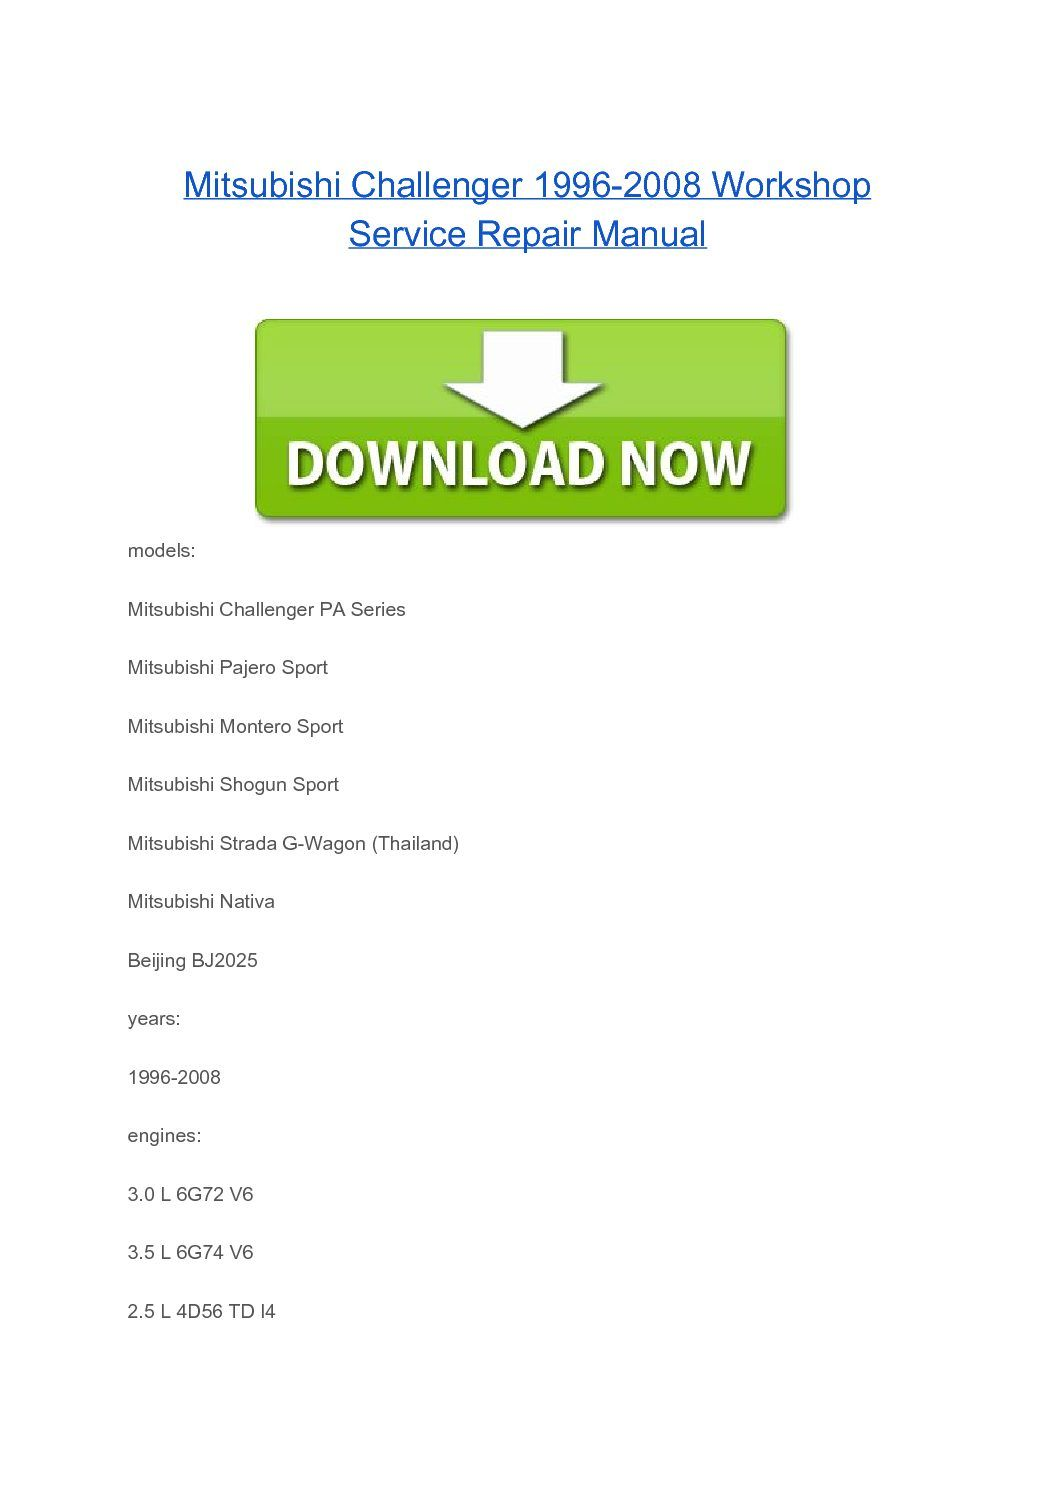 Mitsubishi Shogun Sport 1996-2008 PA Series workshop service repair manual